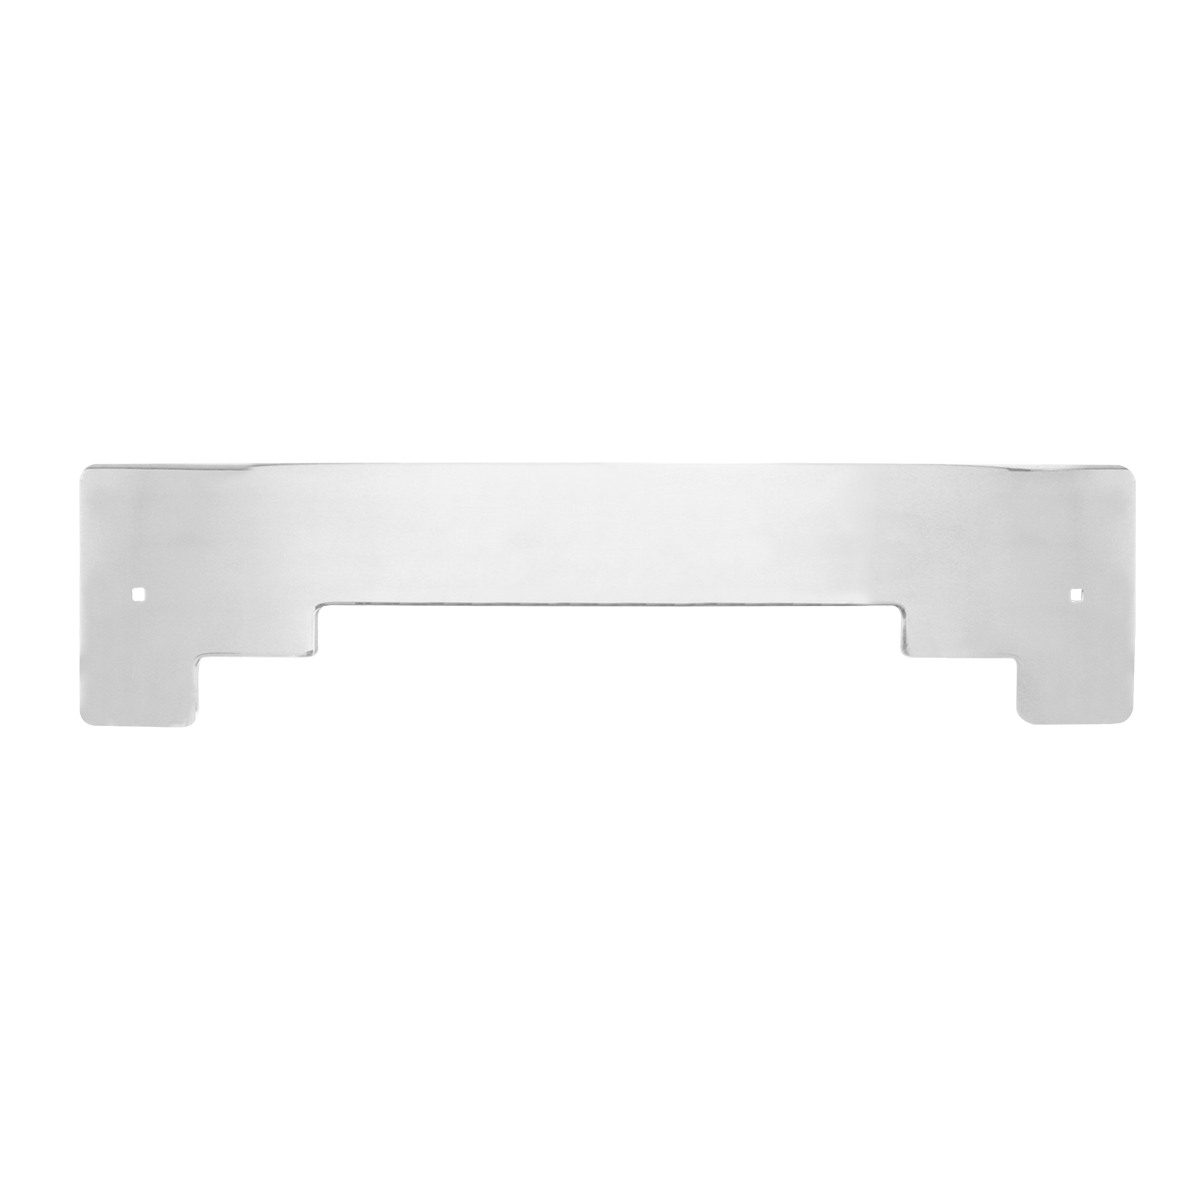 Chrome Plated Steel Step Style Bottom Mud Flap Plate w/o Backing Plate